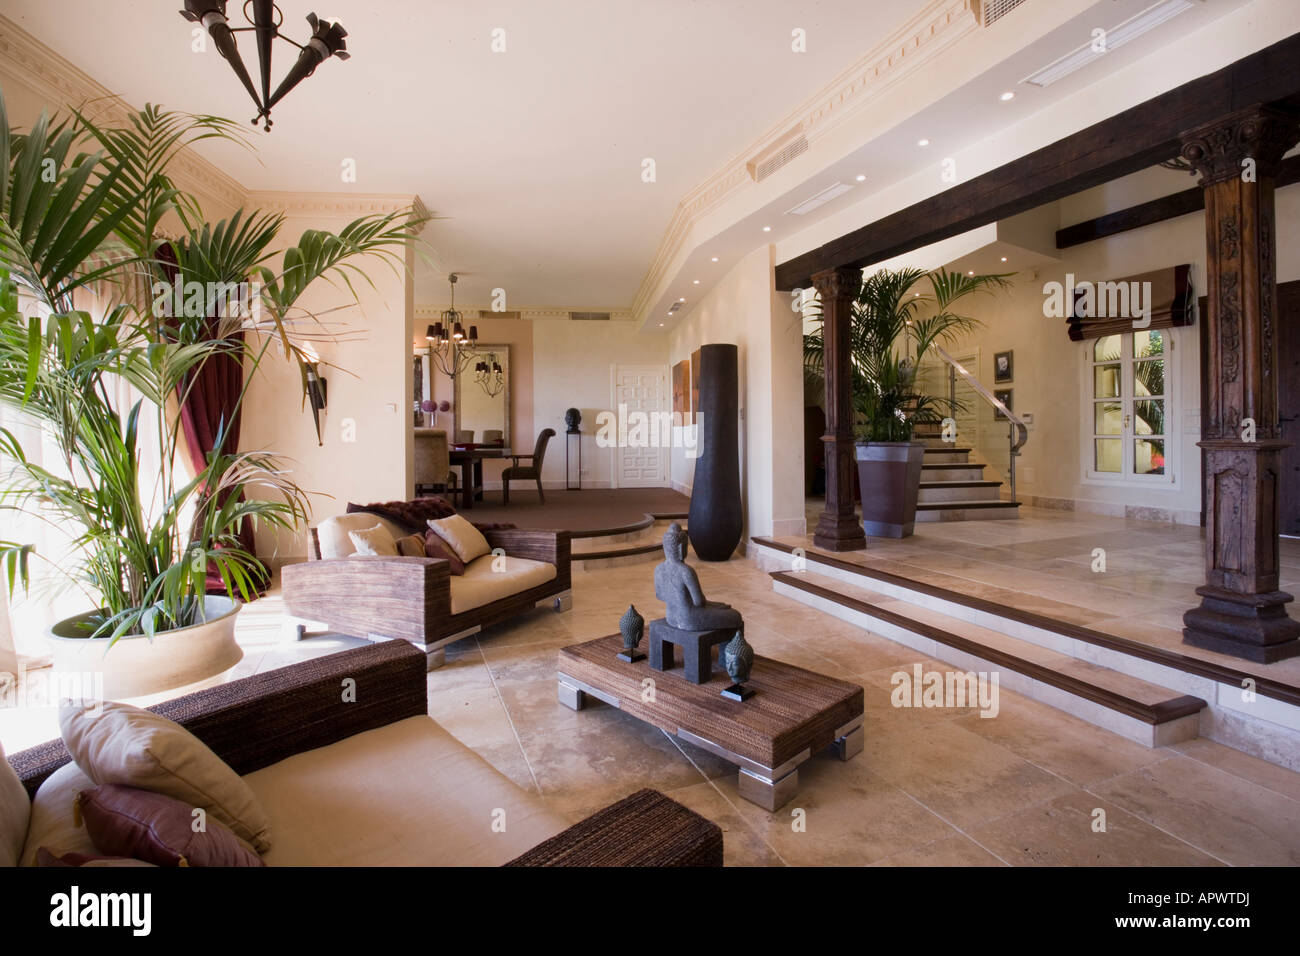 modern orange chair patio chaise lounge spanish villa living room at dusk stock photo: 15873245 - alamy